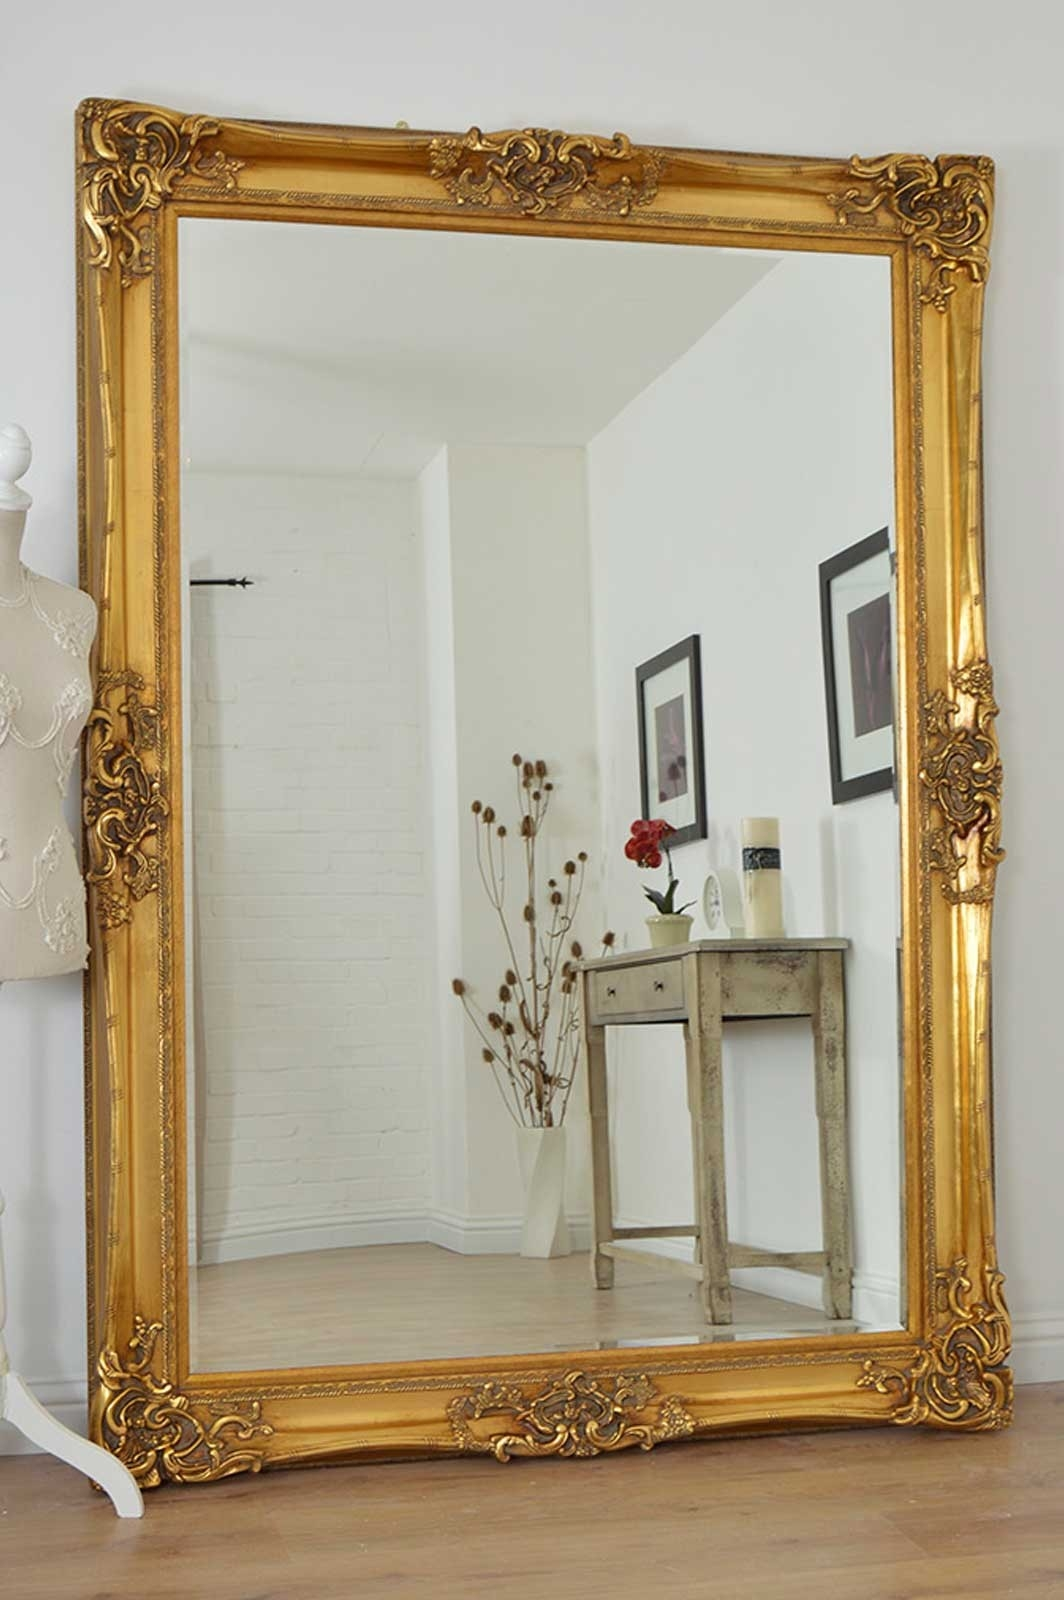 Large Gold Very Ornate Antique Design Wall Mirror 7ft X 5ft 213cm Throughout Ornate Antique Mirrors (Image 7 of 14)